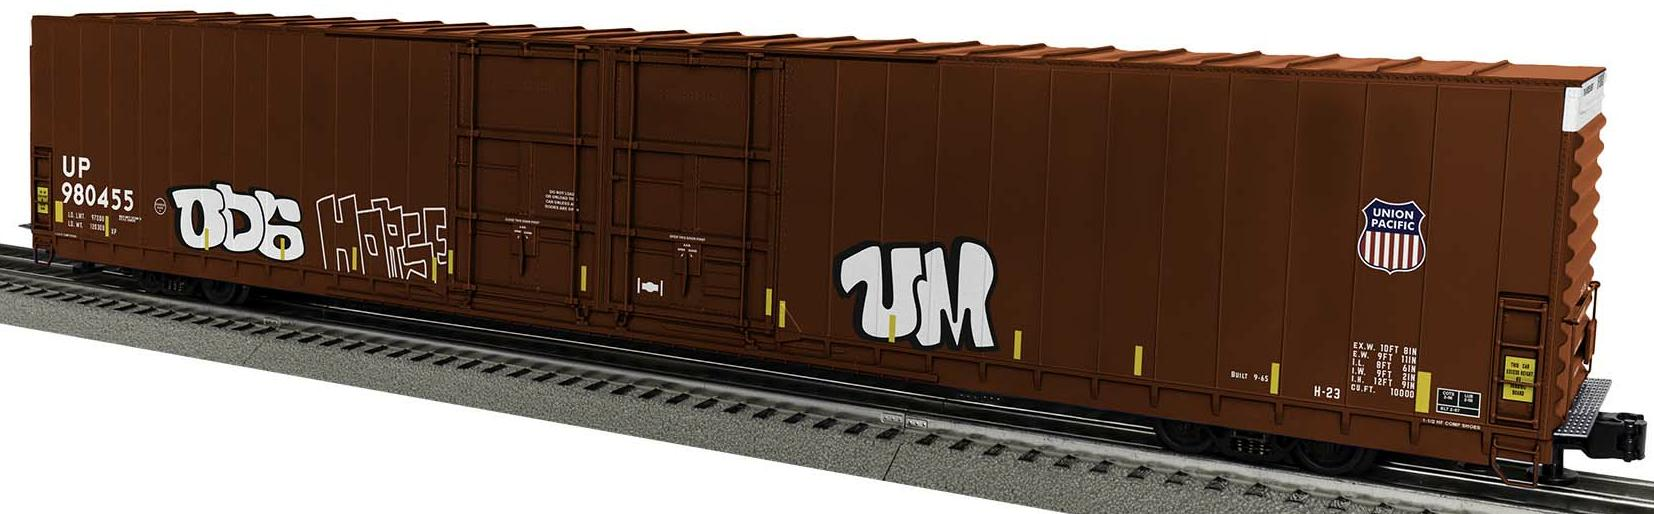 Union Pacific 86' 4 Door High Cube Boxcar w/graffiti #980455 image